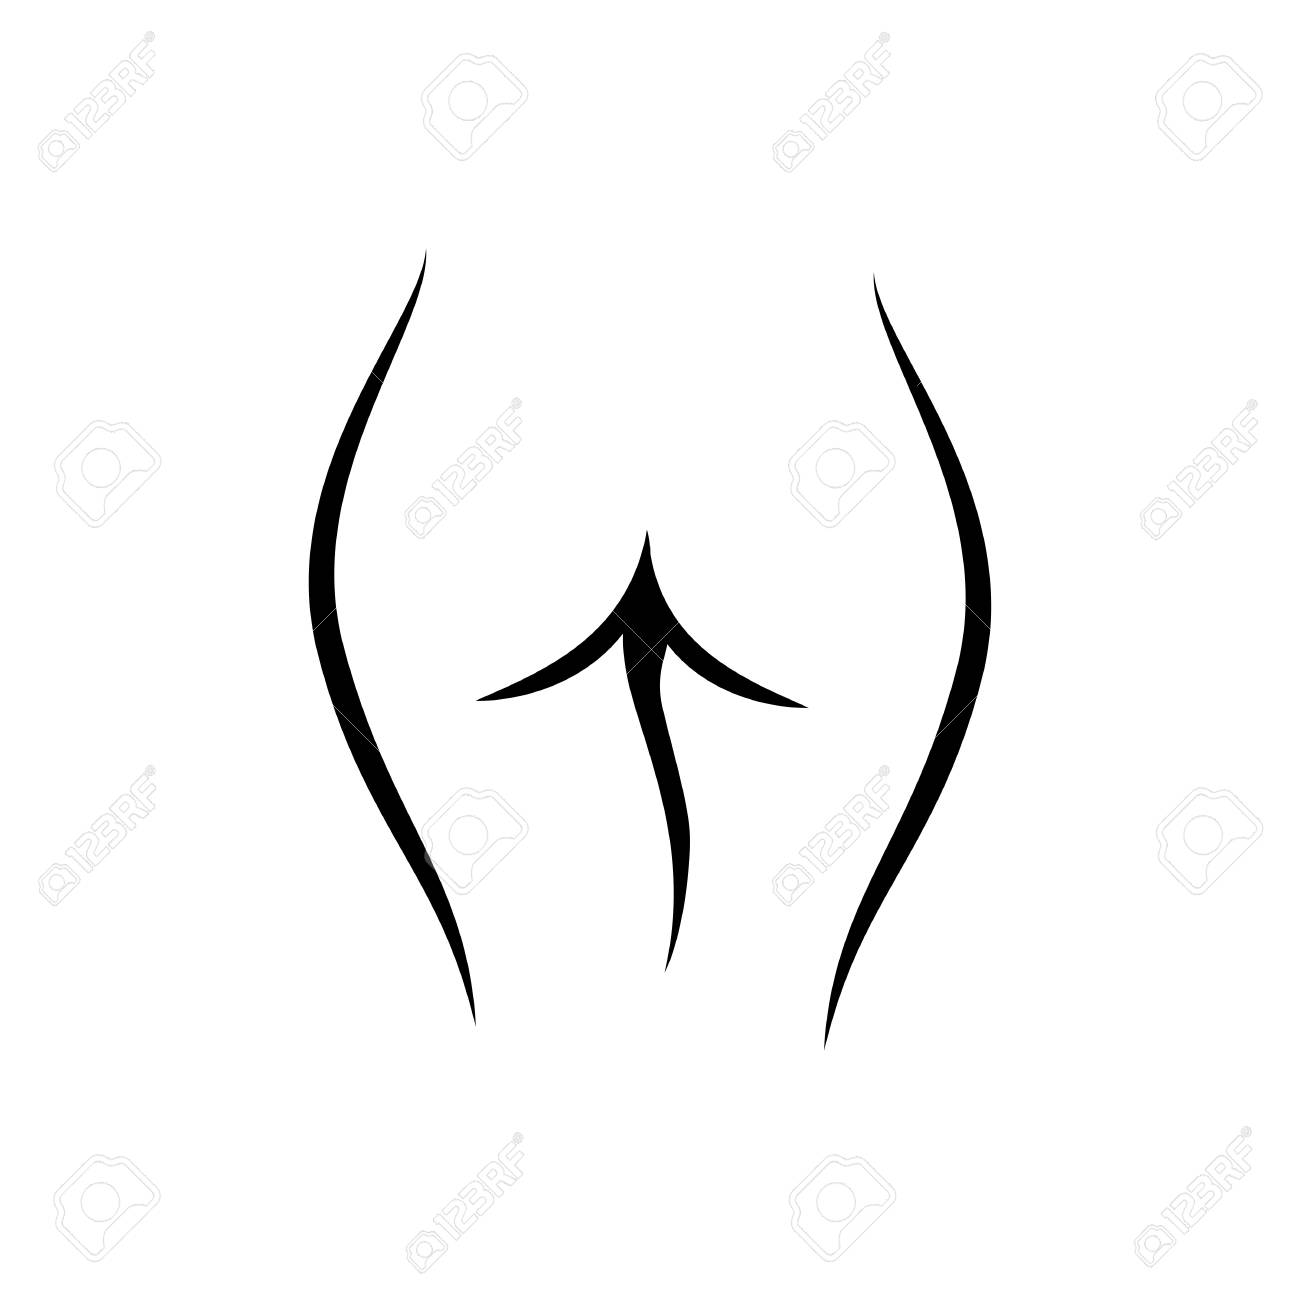 Line art female logo, woman body silhouette, sketch of cute body. Fashion illustration for poster, banner, logo, icon, printing of undewear shop, intimate goods for adult, sport industry. - 109097765